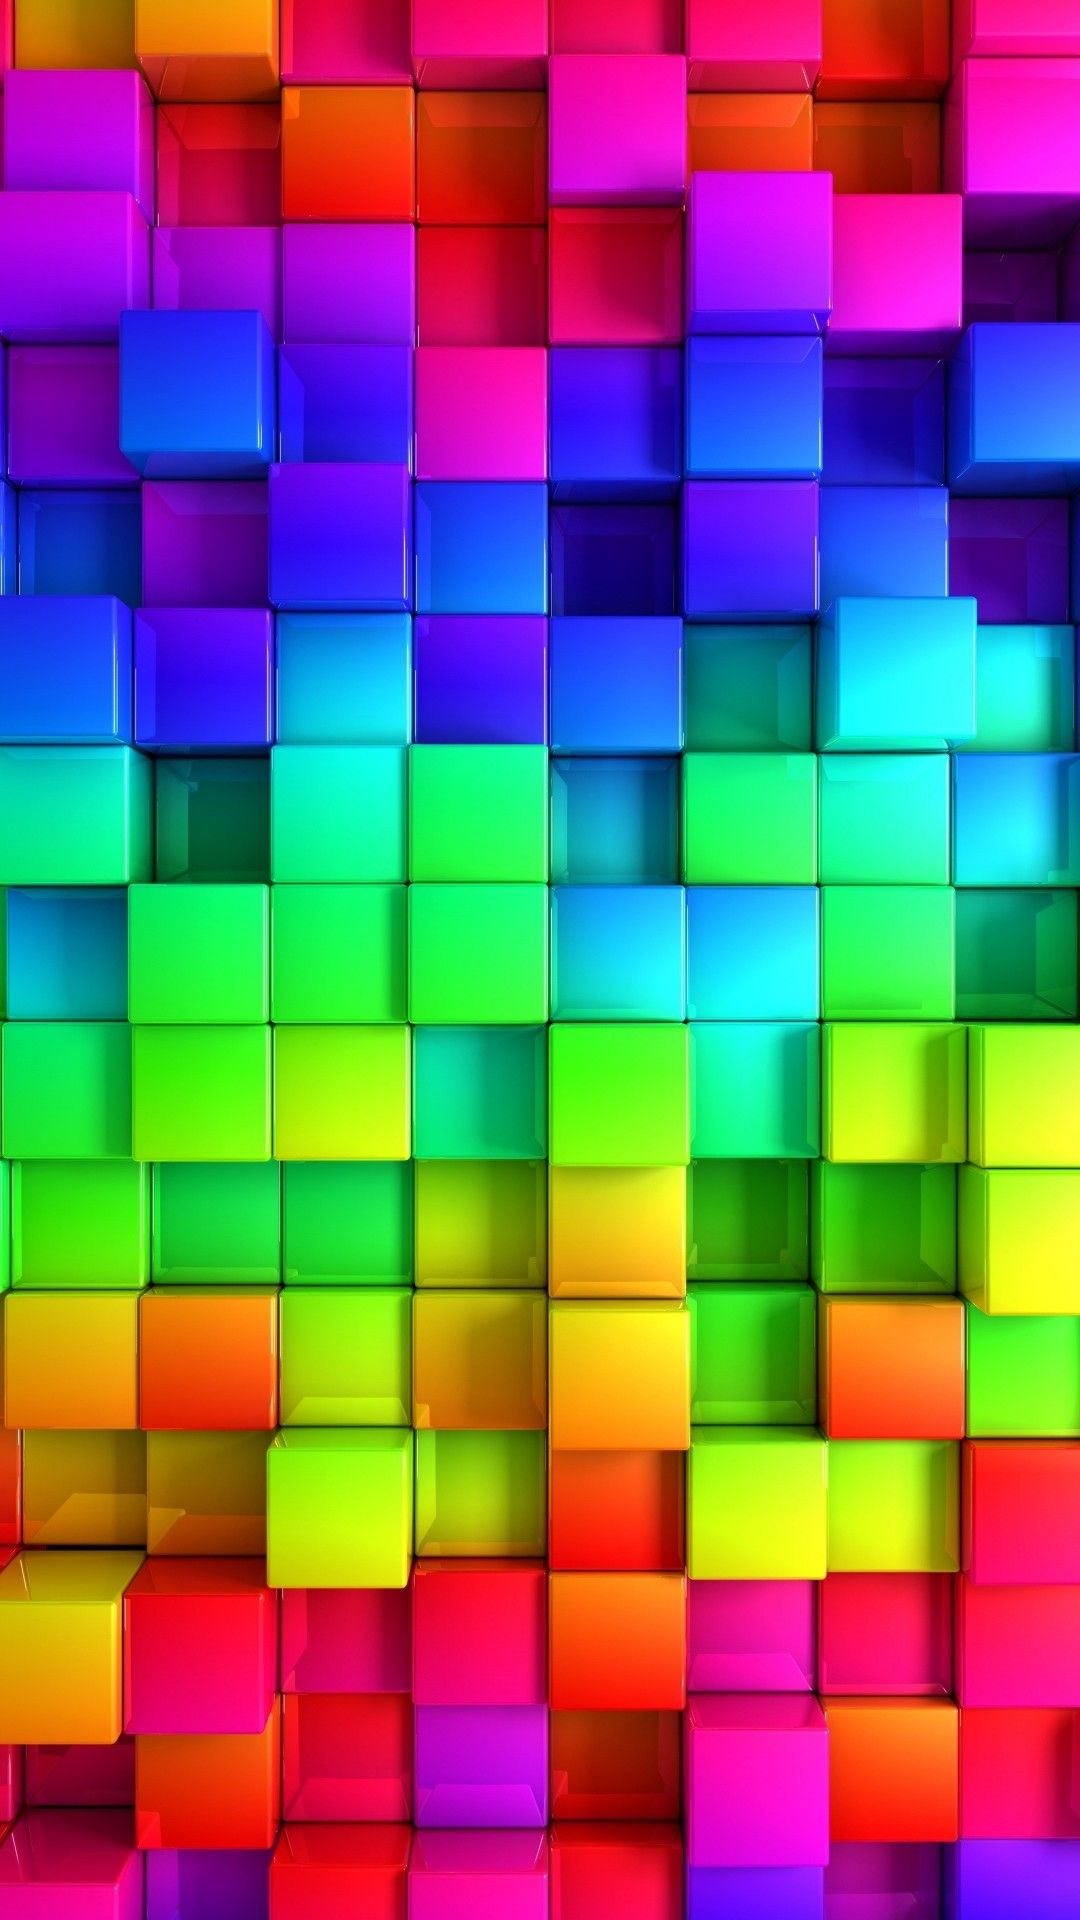 Great 9 Colorful Hd Iphone Wallpapers For Your Android or